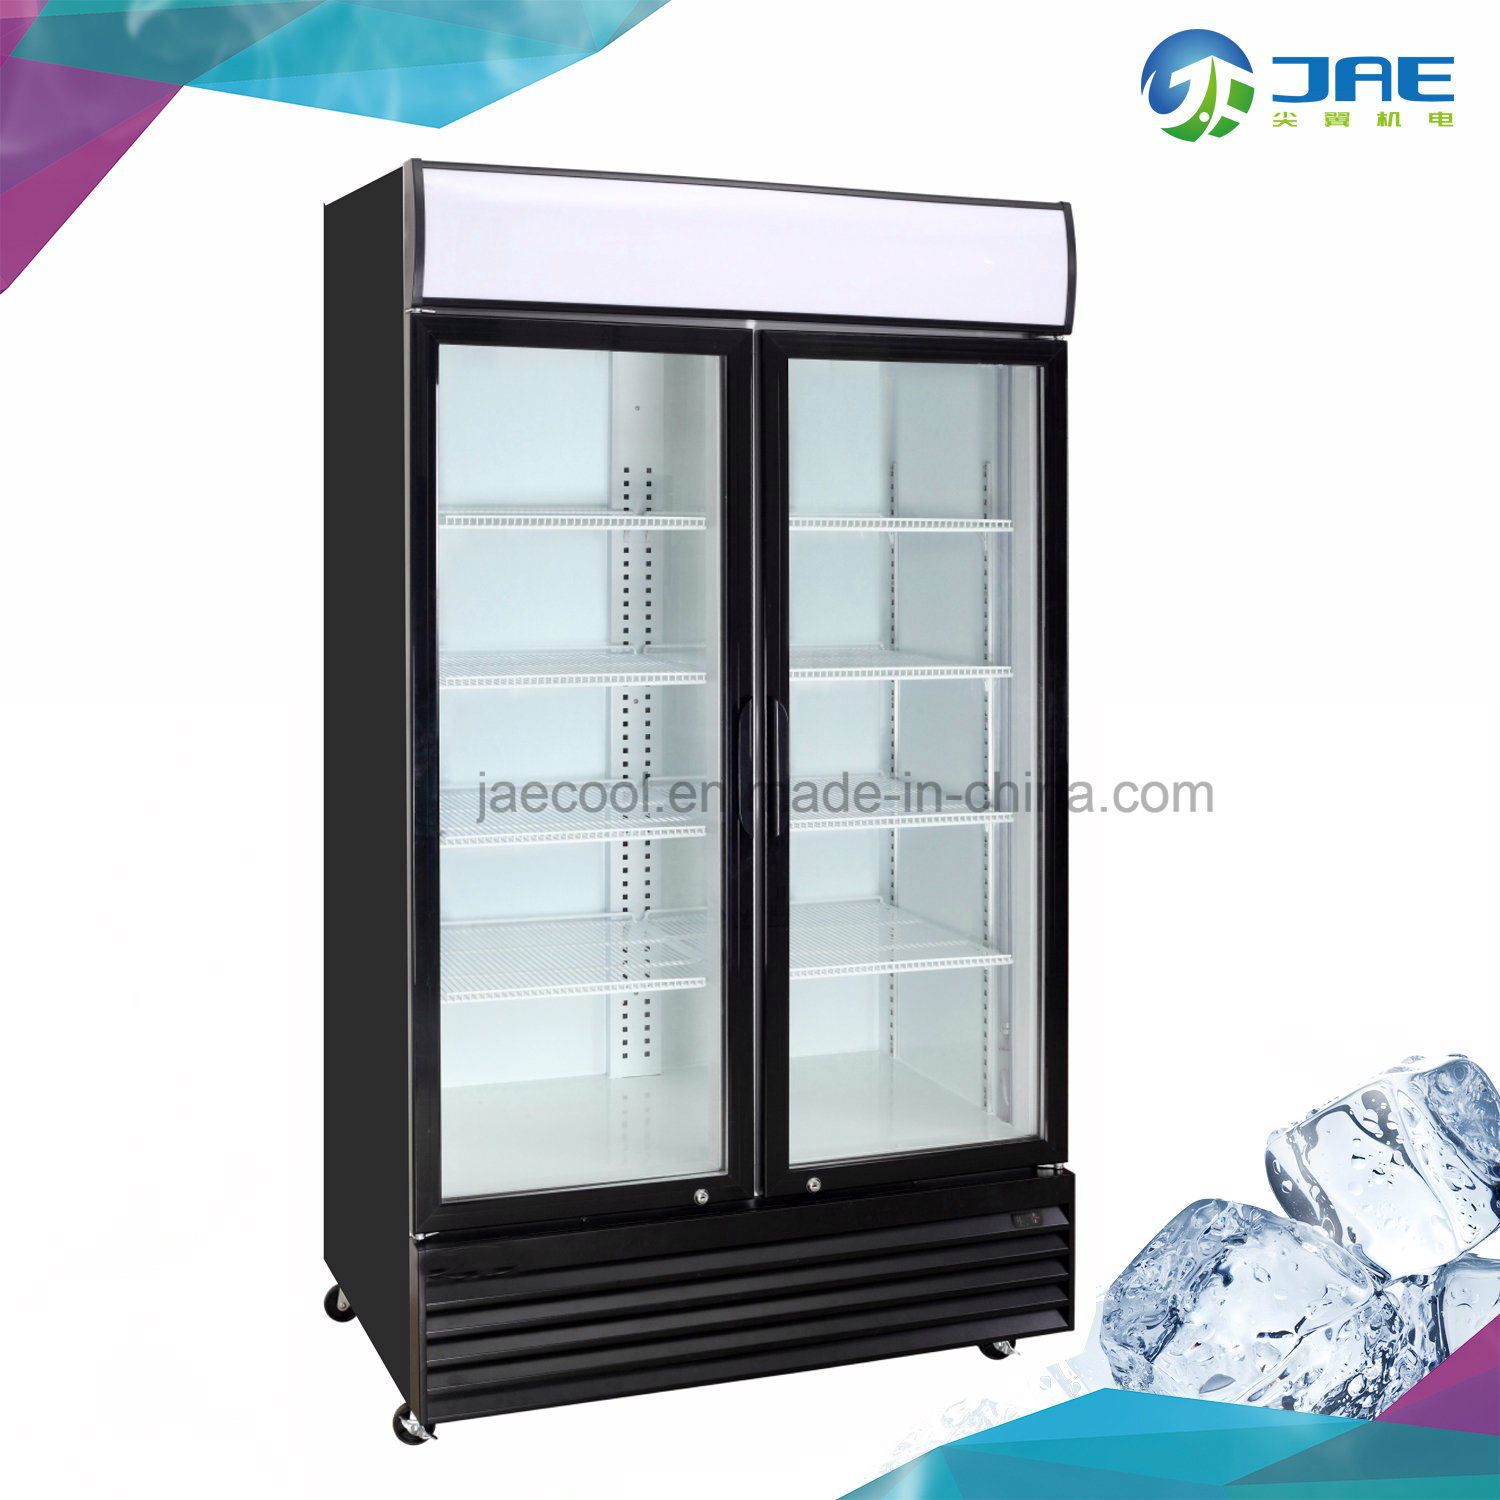 China Double Door Fridge, Double Door Fridge Manufacturers, Suppliers -